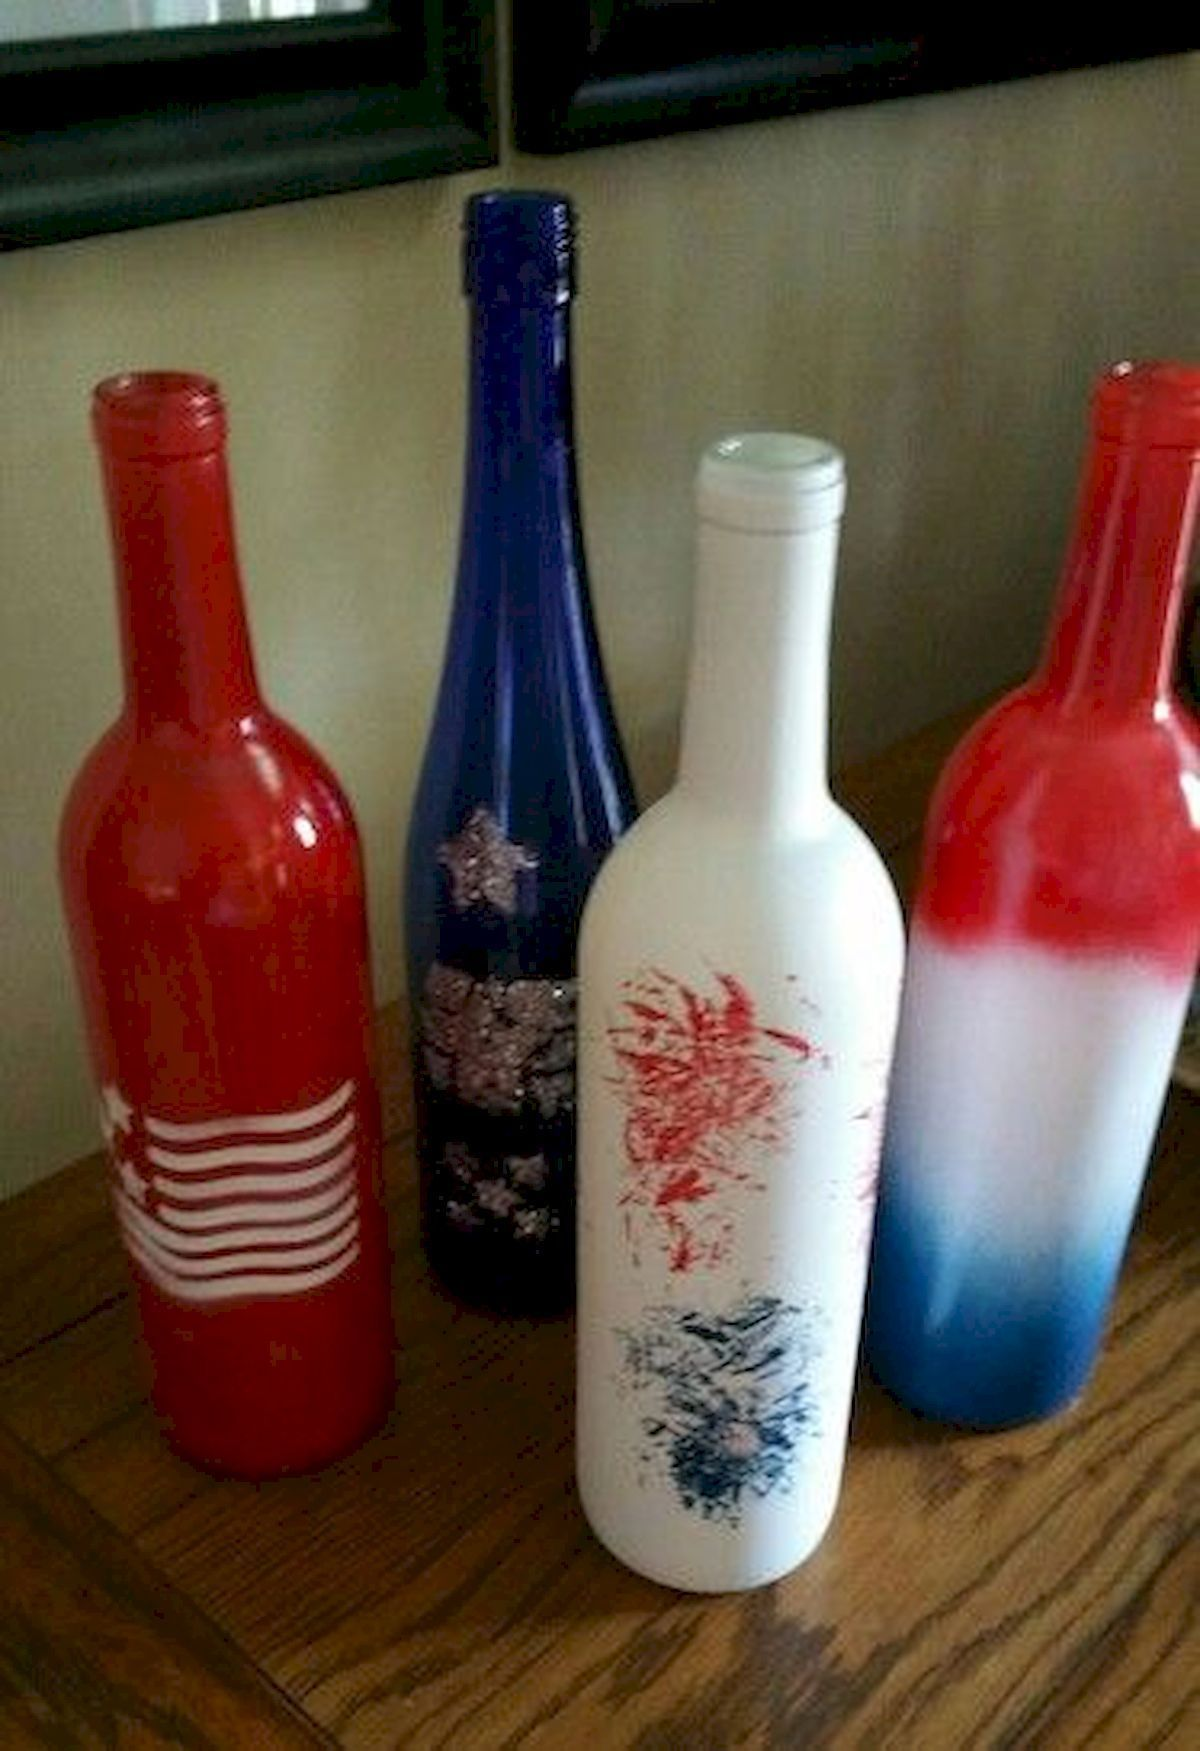 80 Diy America Independence Day Decor Ideas And Design Http Prohomedecor Info 80 Diy America Independence Bottle Crafts Wine Bottle Decor Bottles Decoration